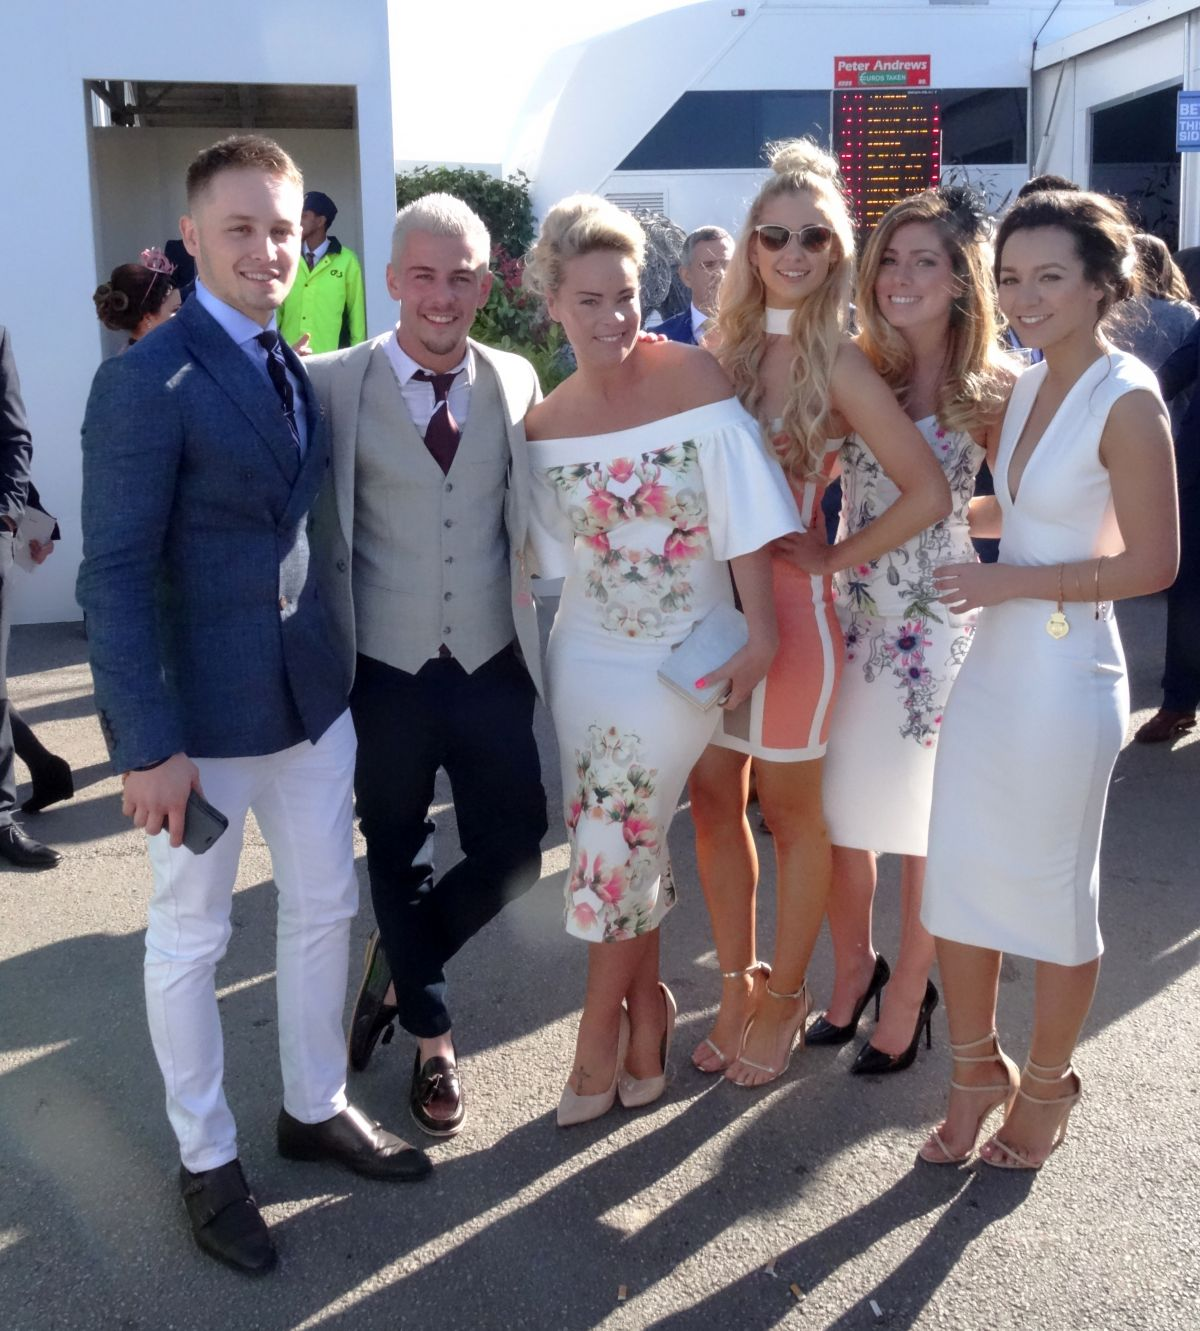 NIKKI SANDERSON, NADINE MULKERRIN, TAMARA WALL and AMANDA CLAPHAM at Grand National Ladies Day at Aintree in Merseyside 04/07/2017